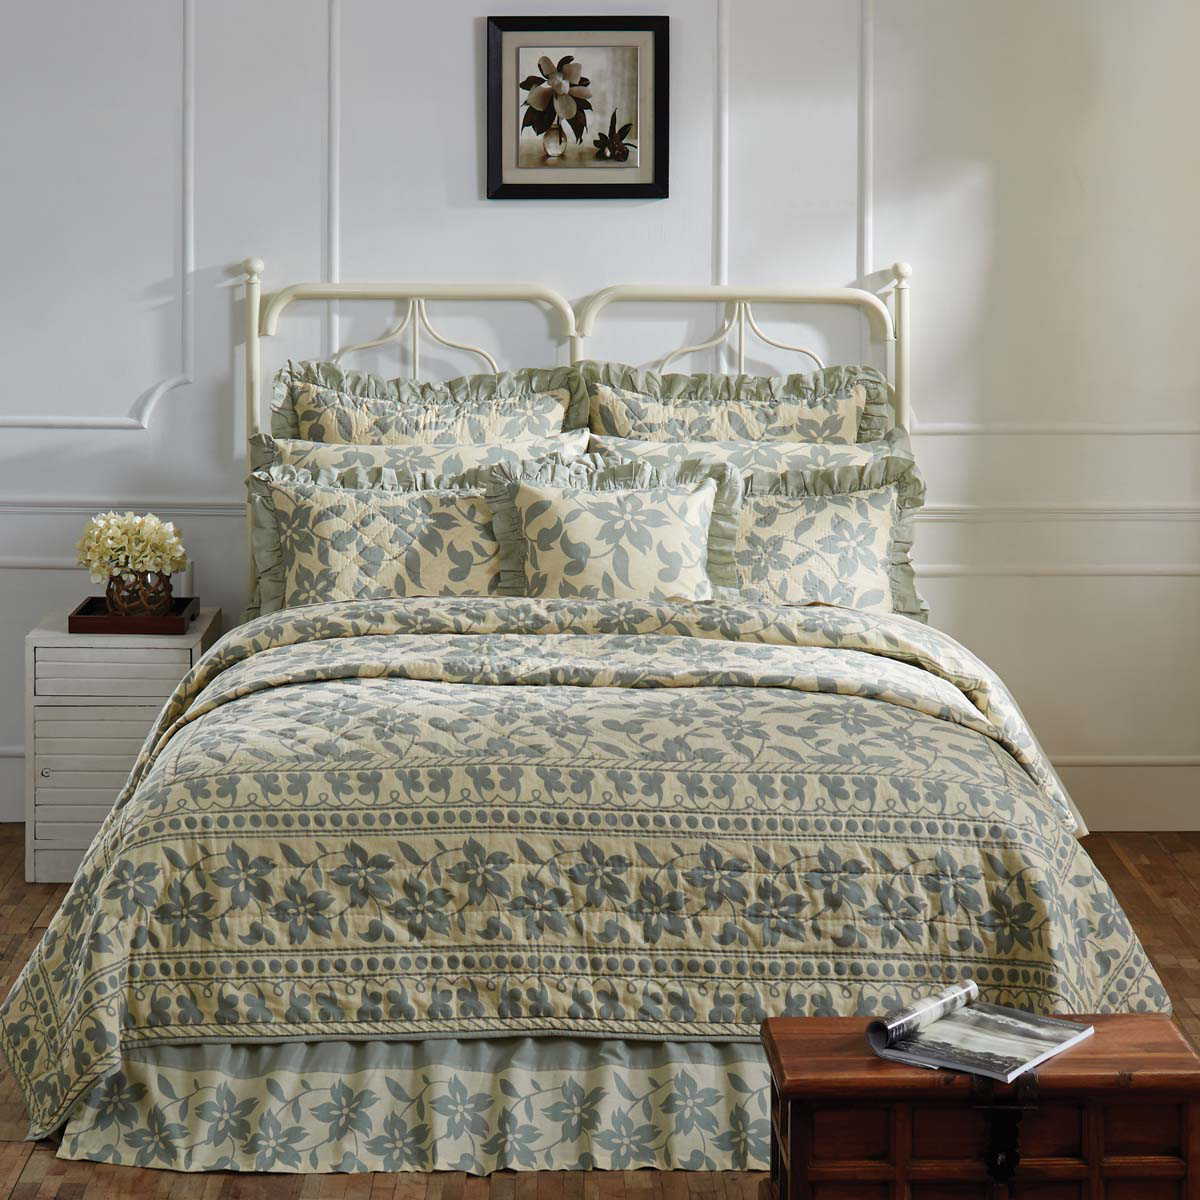 Briar Sage California King Quilt Set - 9 Pieces - Sale Priced - $50 Off - Vhc